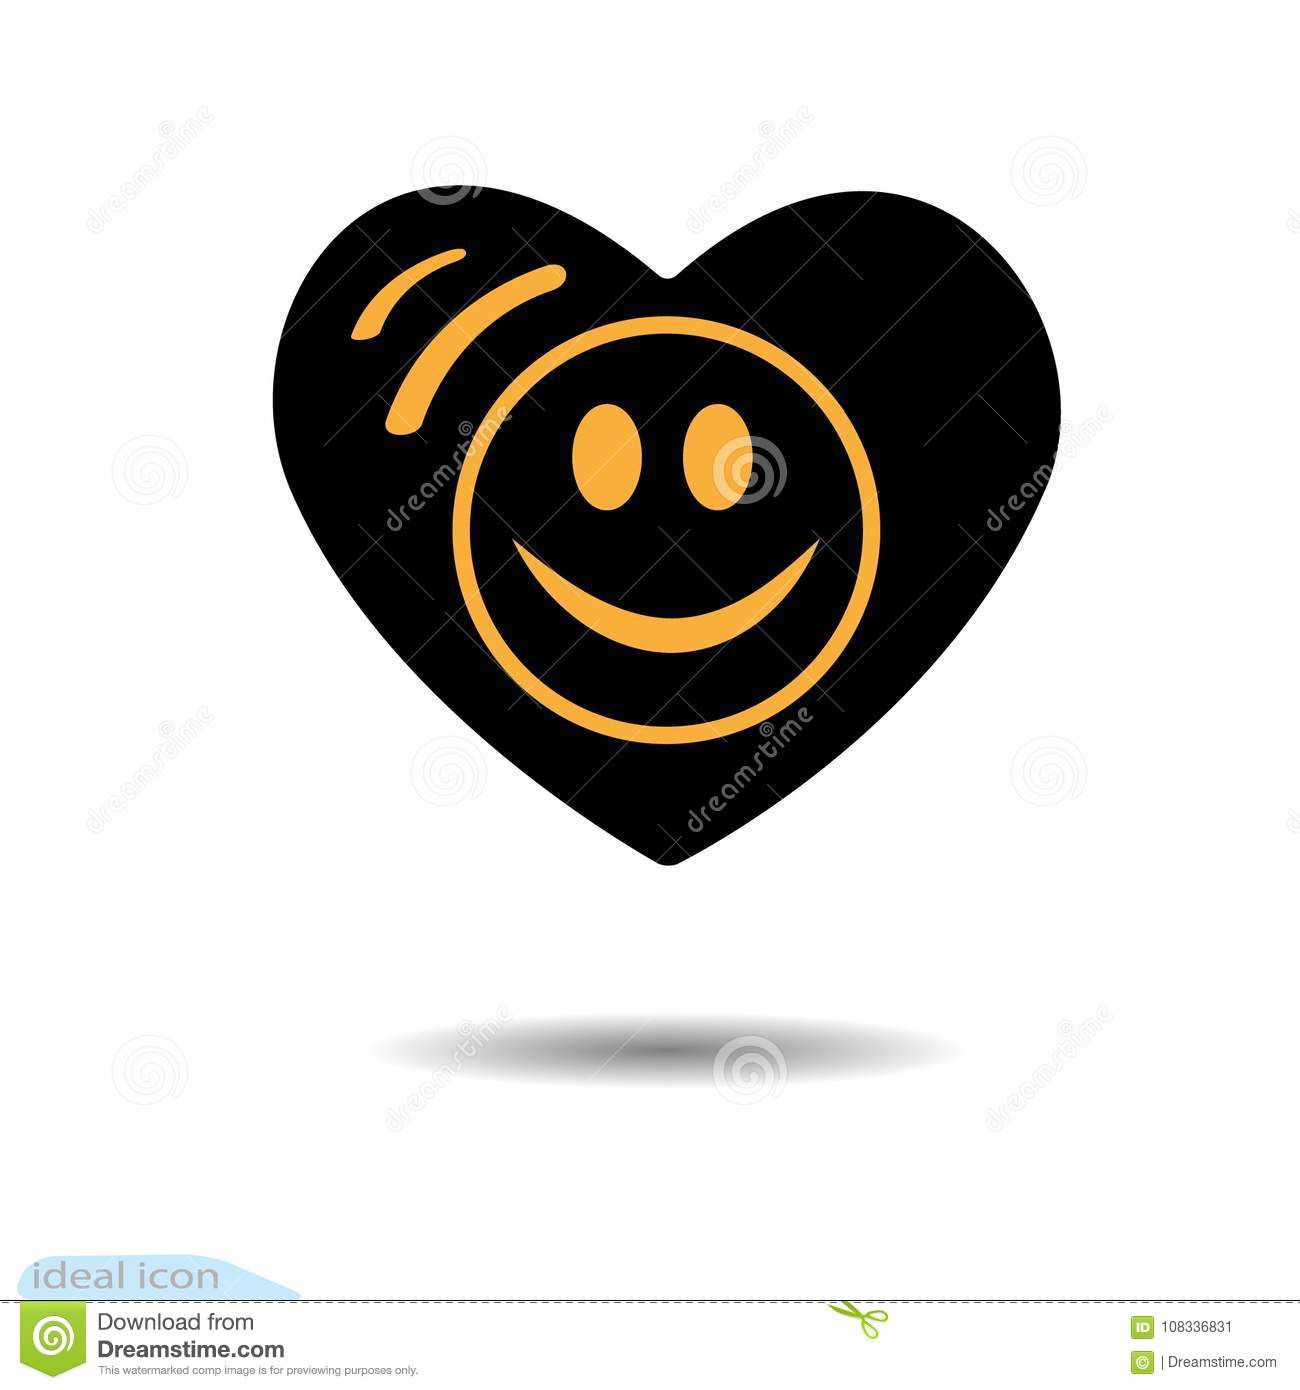 The heart icon a symbol of love valentine s day smile in the a symbol of love valentine s day smile in the circle eyes flat style for graphic design logo black as coal buycottarizona